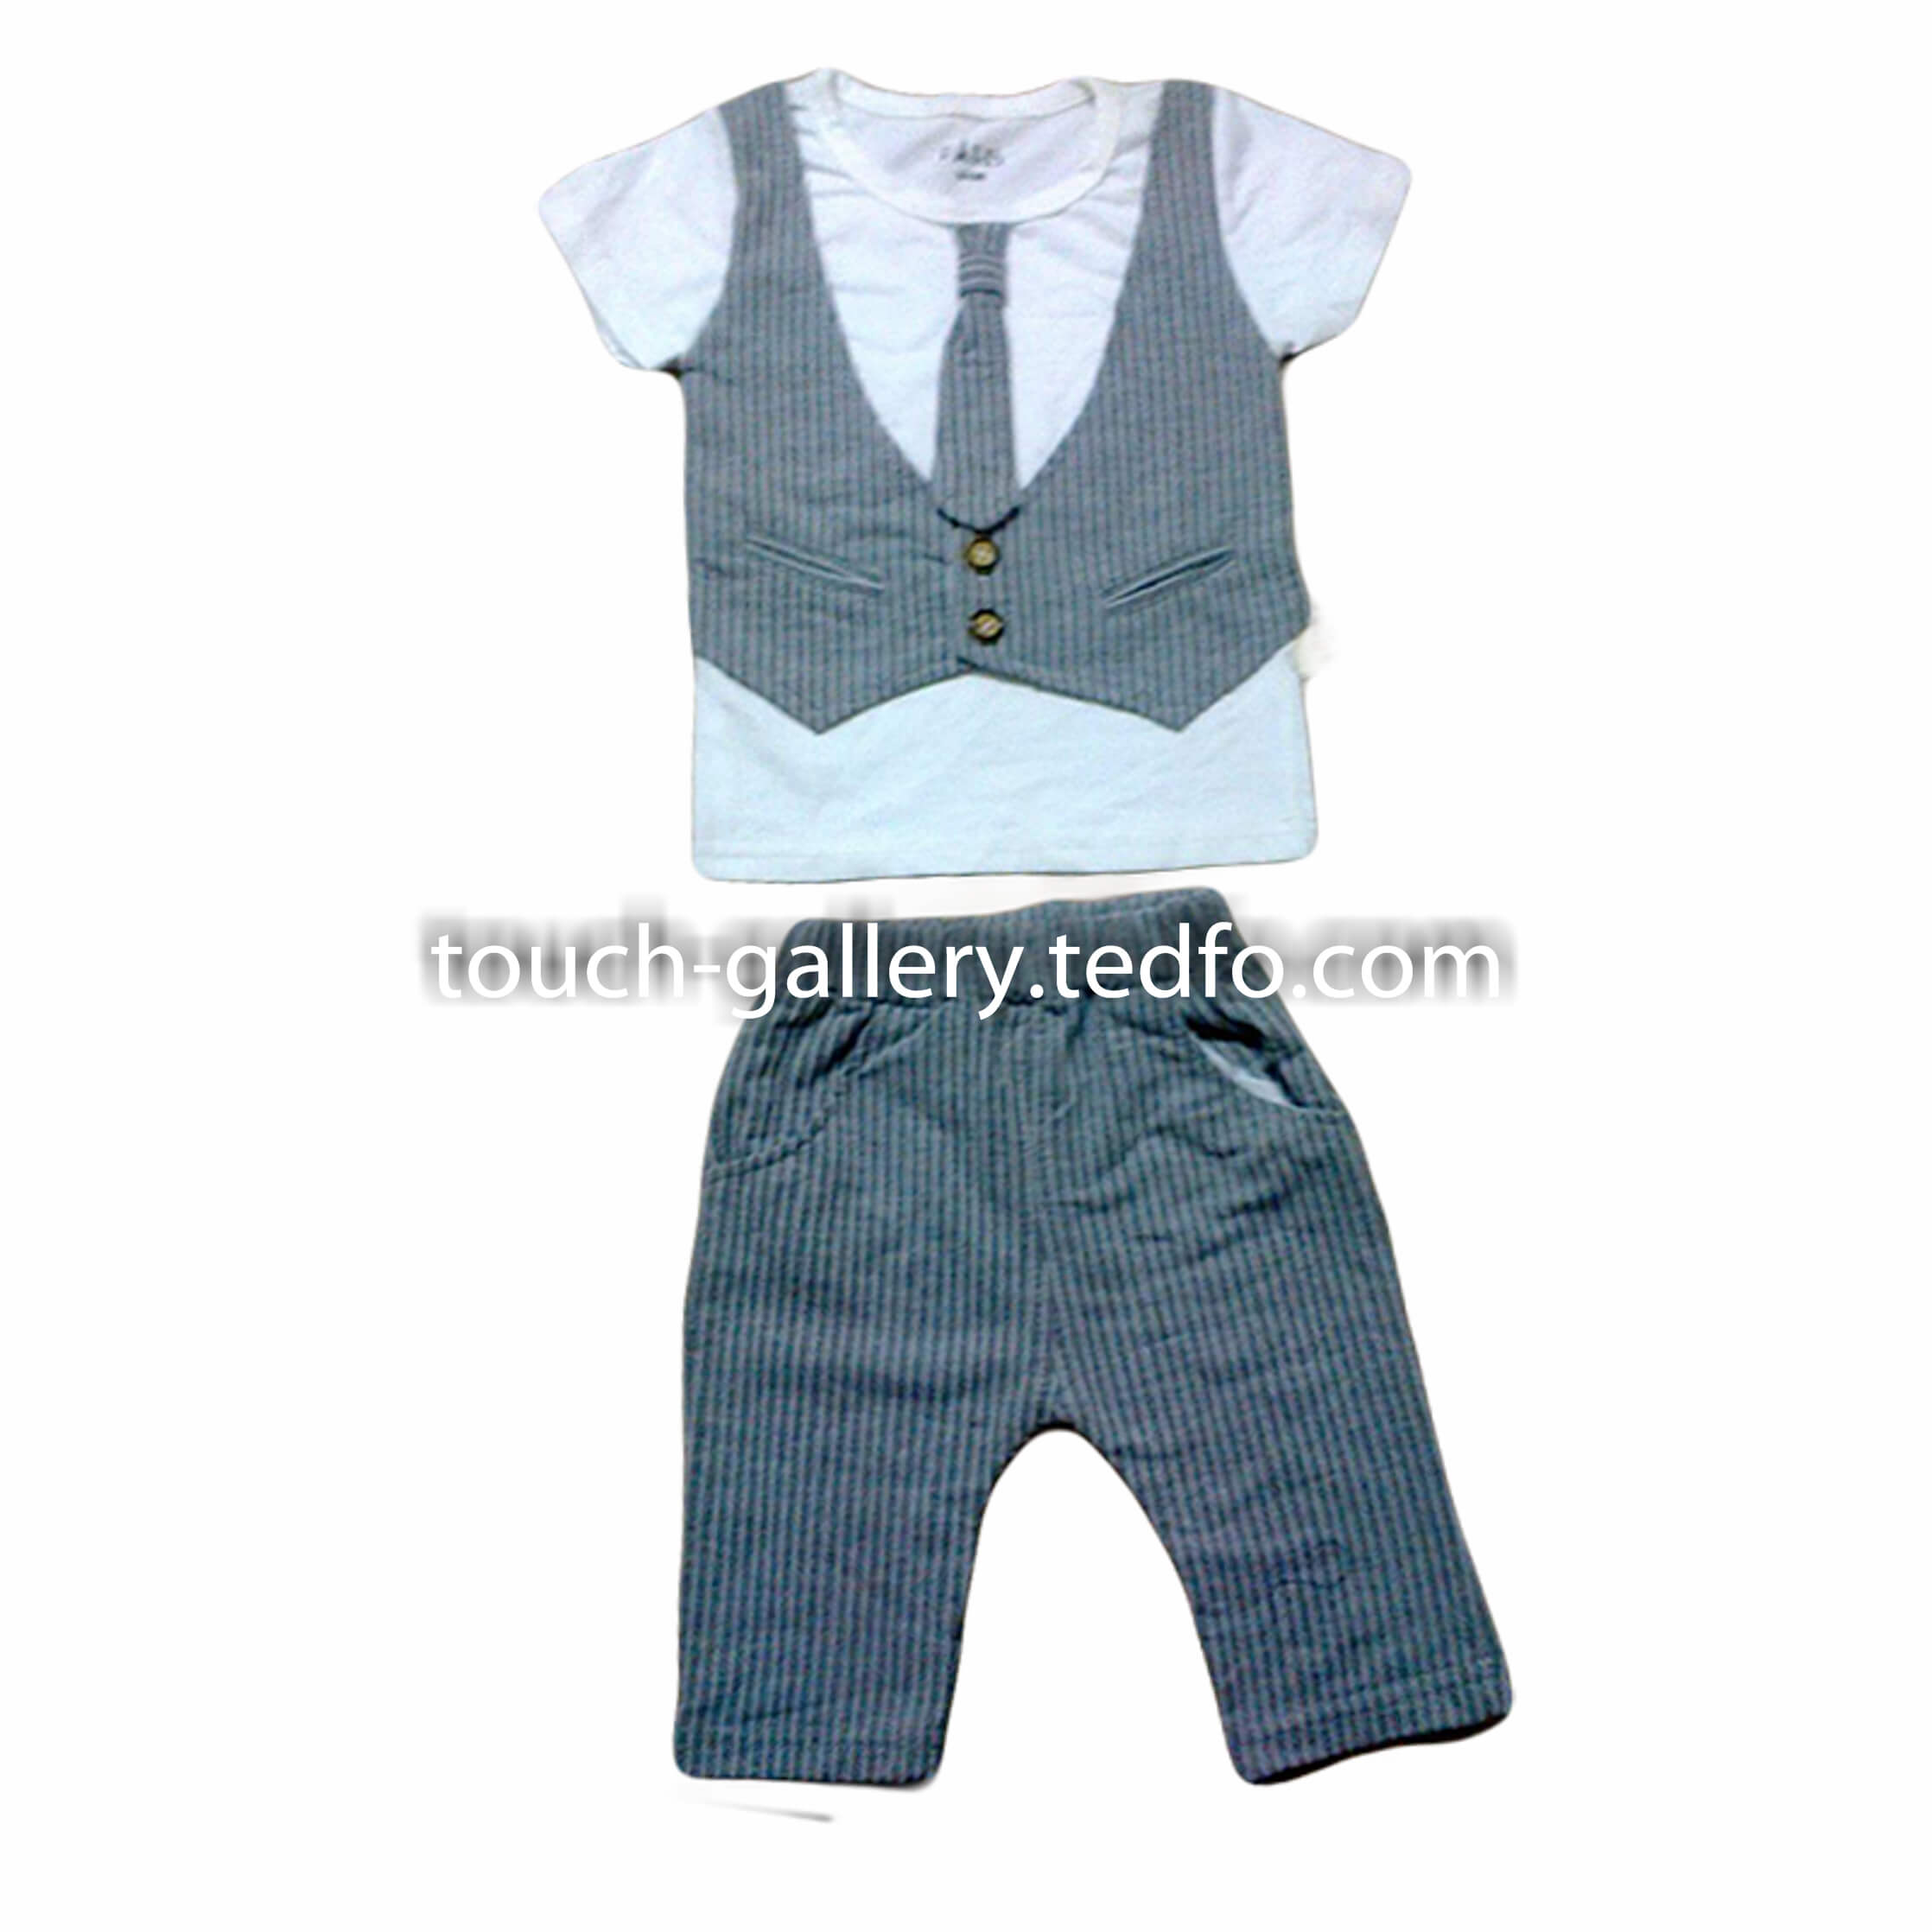 Best Baby Sets,Full Formal Attire for Kids